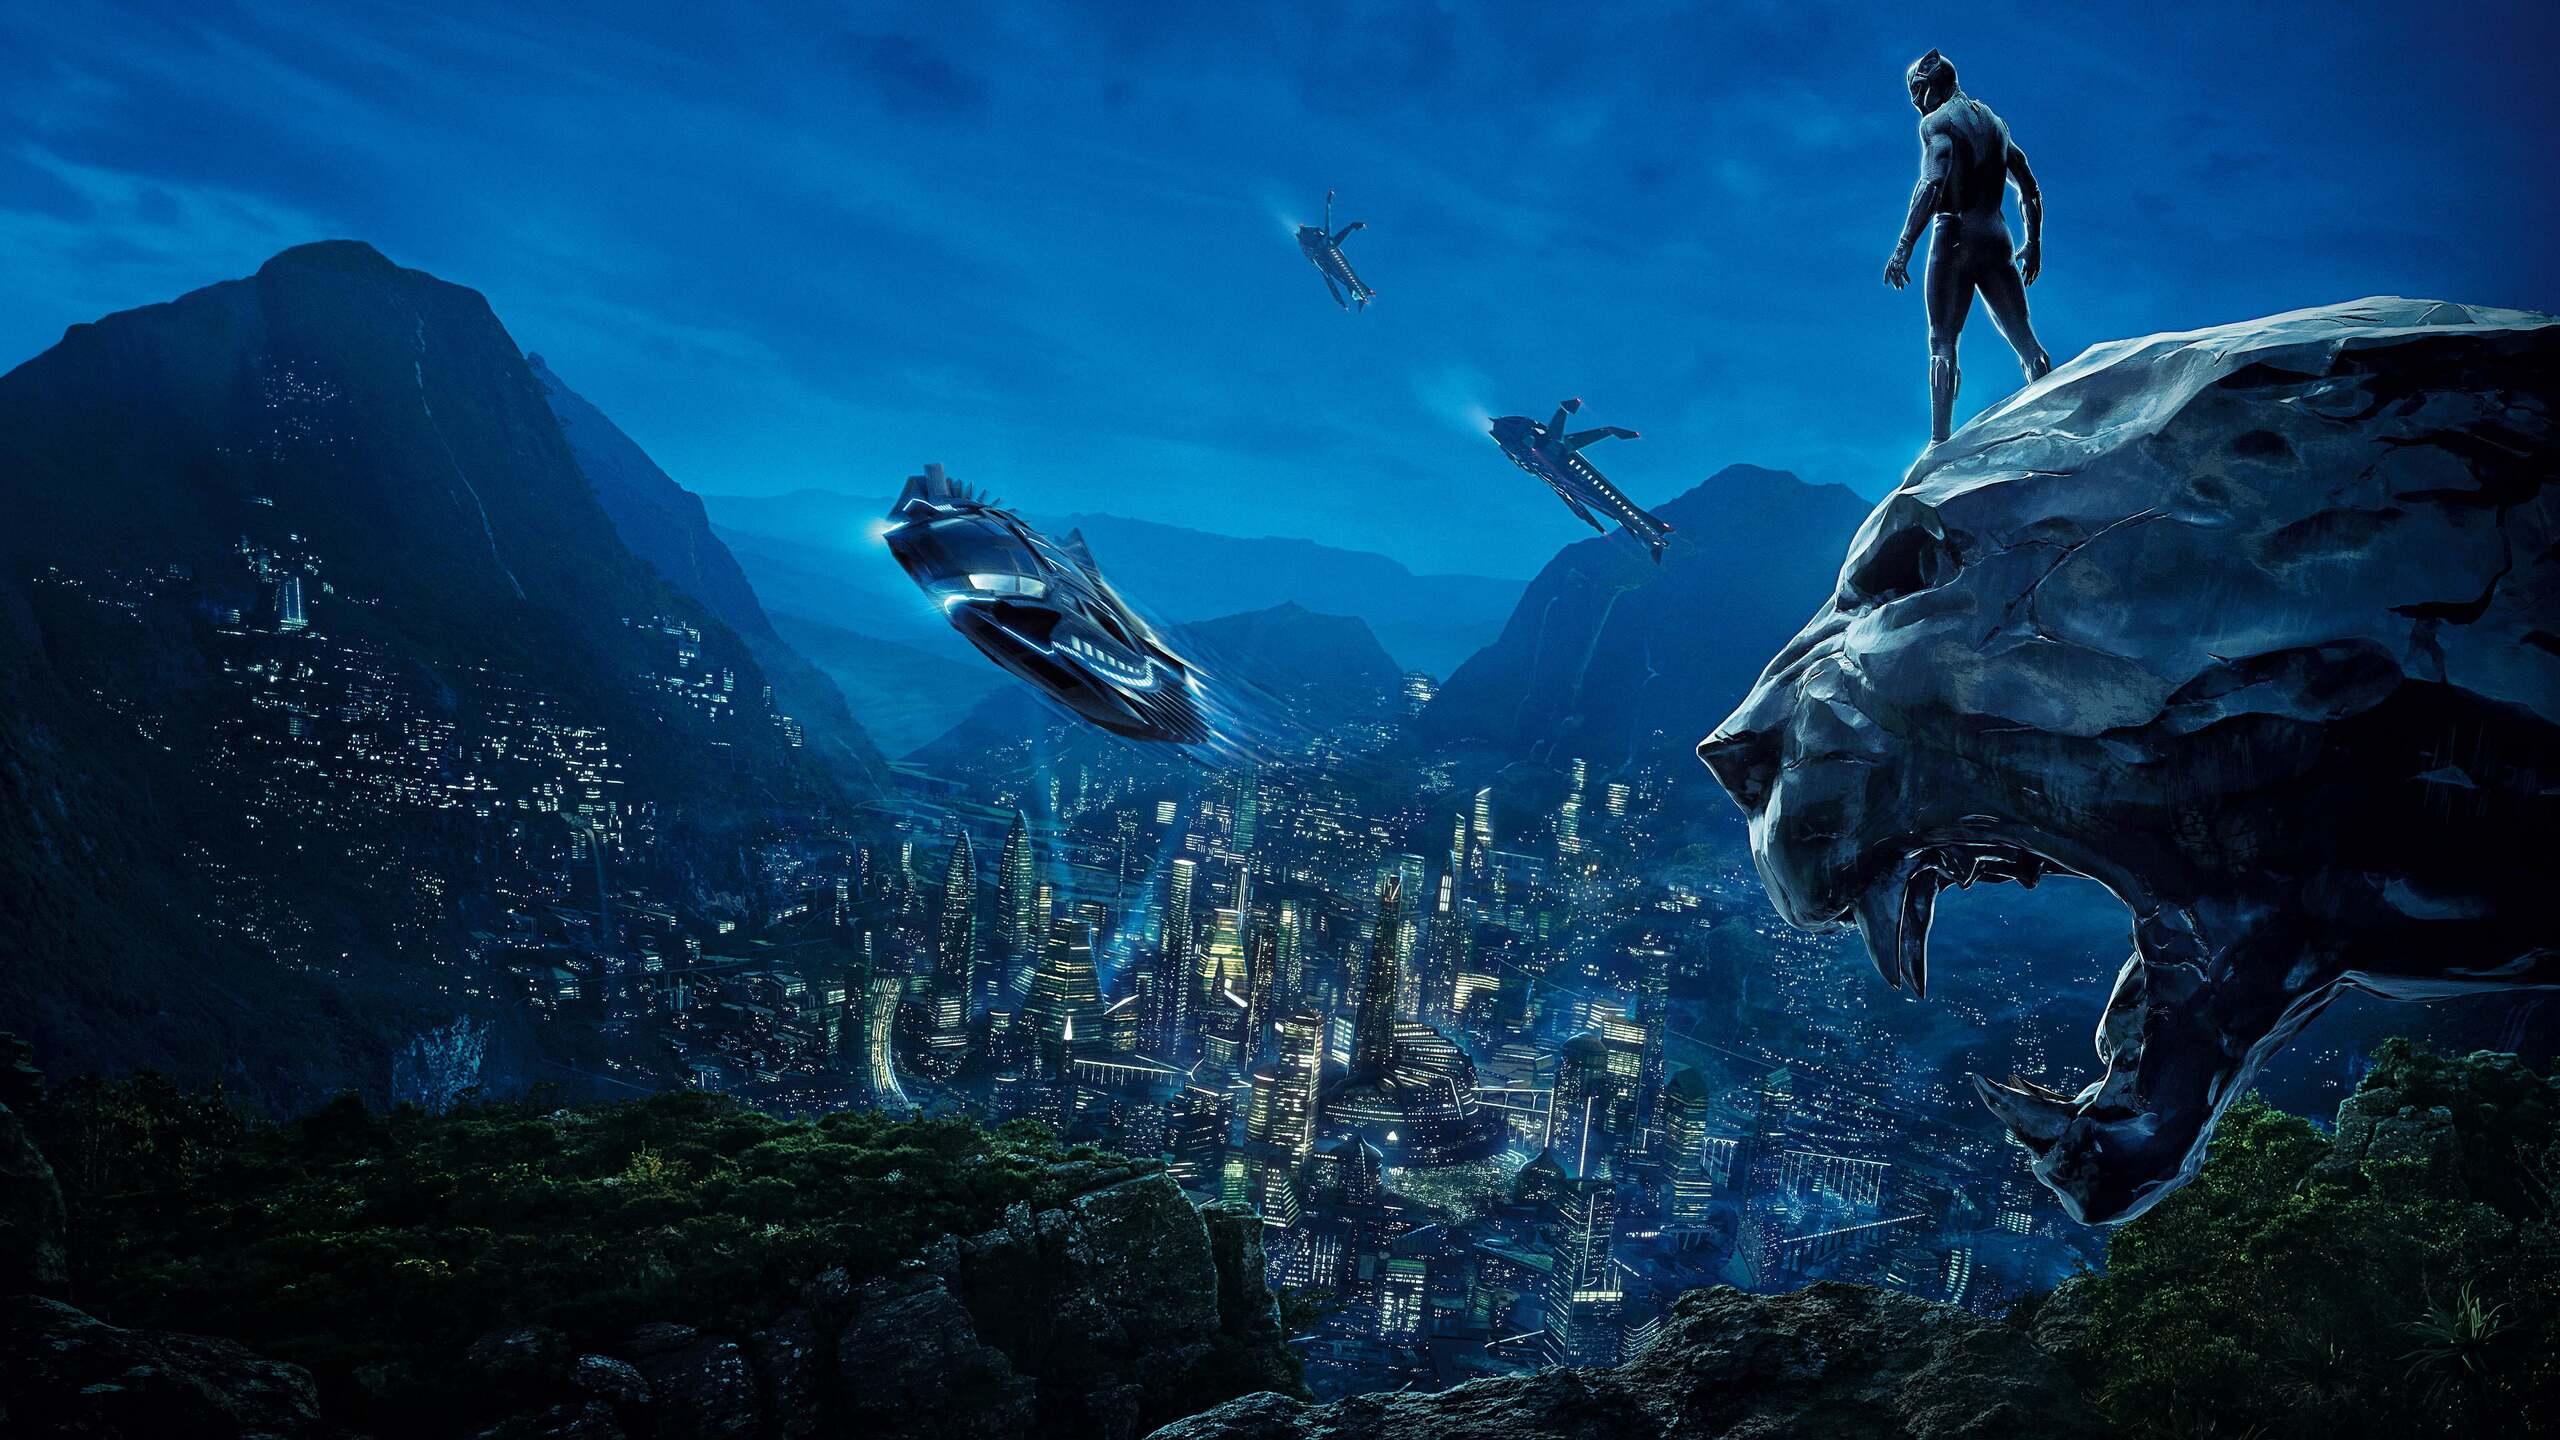 2560x1440 Black Panther 4k Movie Poster 1440p Resolution Hd 4k Wallpapers Images Backgrounds Photos And Pictures